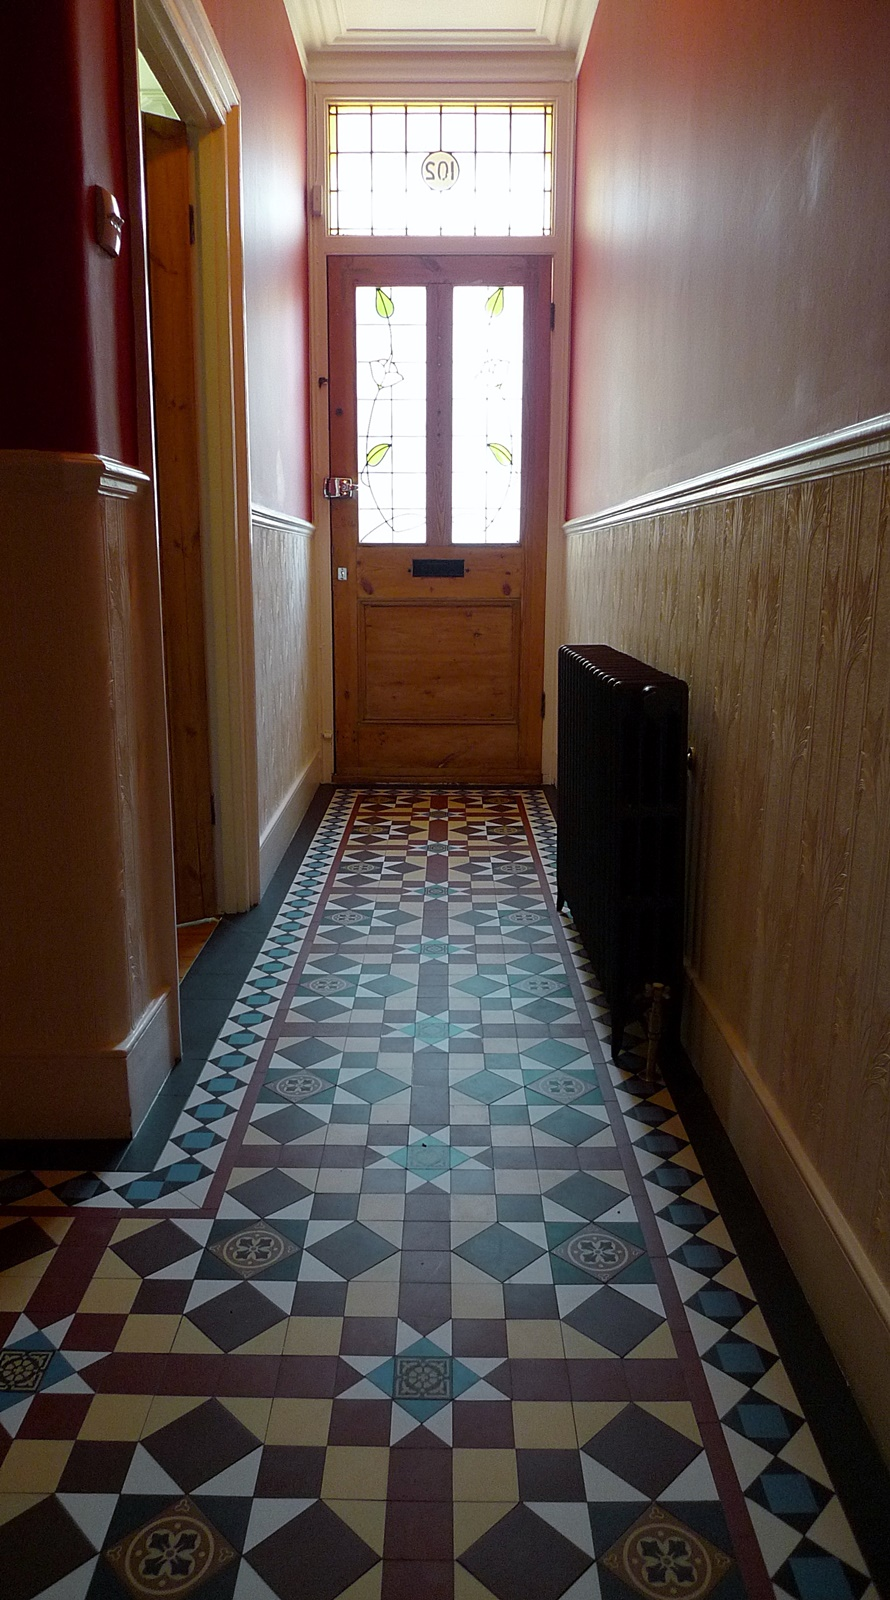 Foyer Hallway Schedule : Victorian hallway mosaic tile path internal entrance and